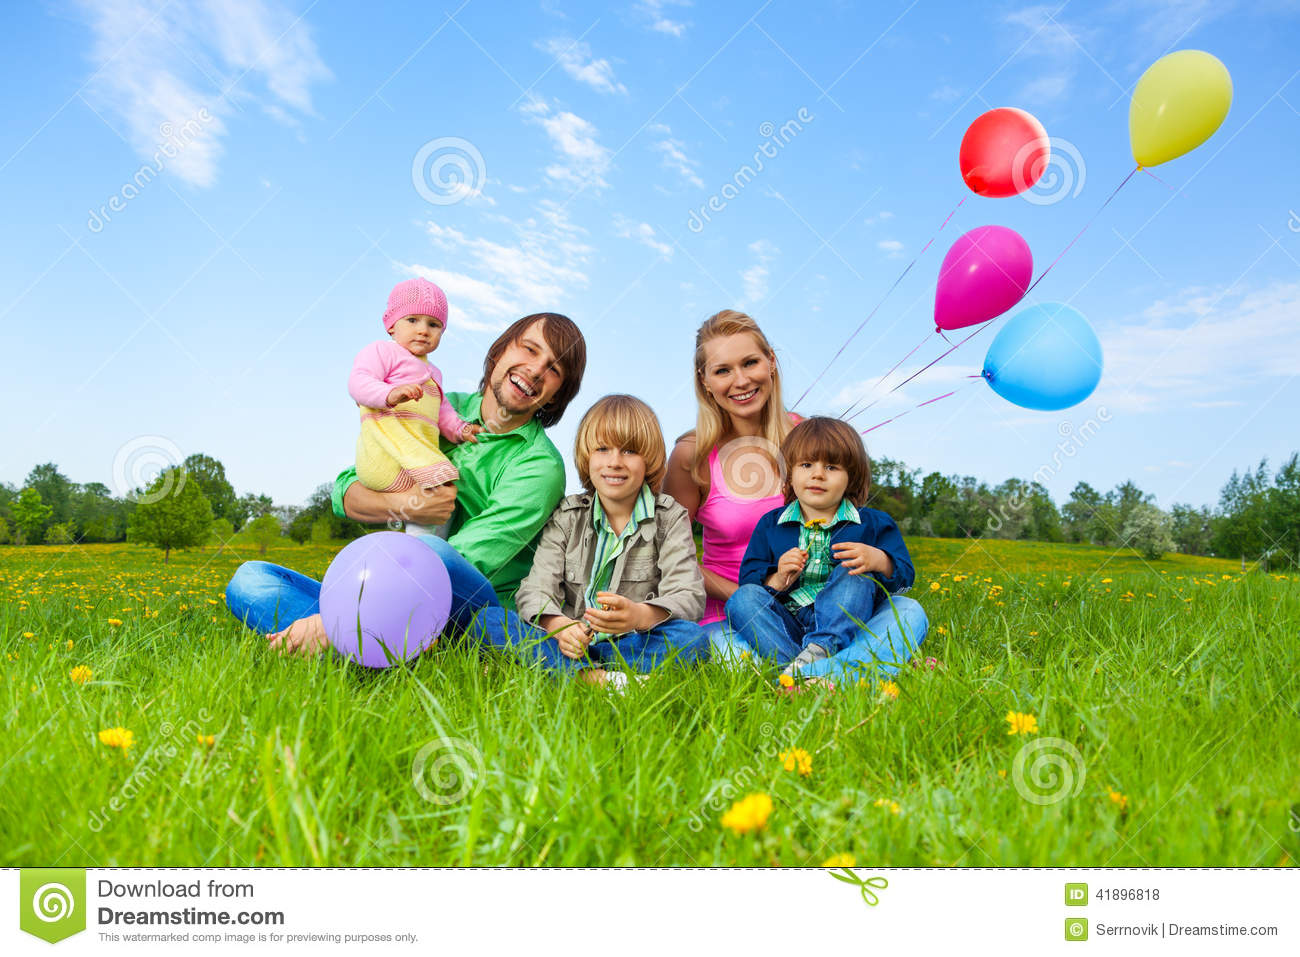 Smiling family sitting on grass with balloons